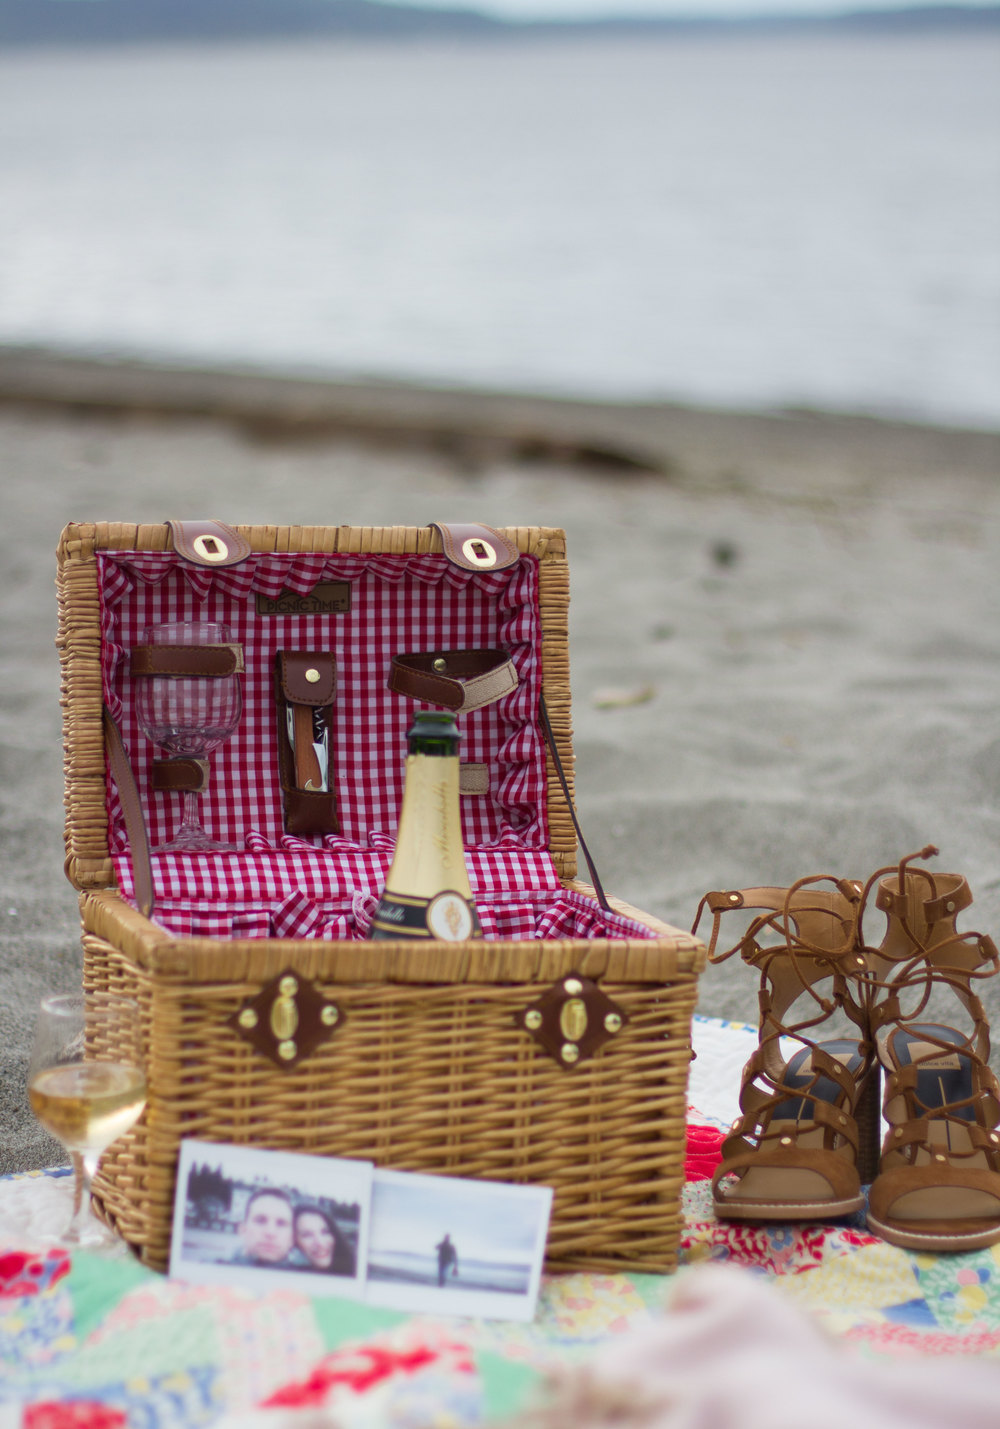 Champagne at the Beach for Date Night, JOA Striped Romper, Dolce Vita Lyndon Sandals, & a Cute Picnic Basket!